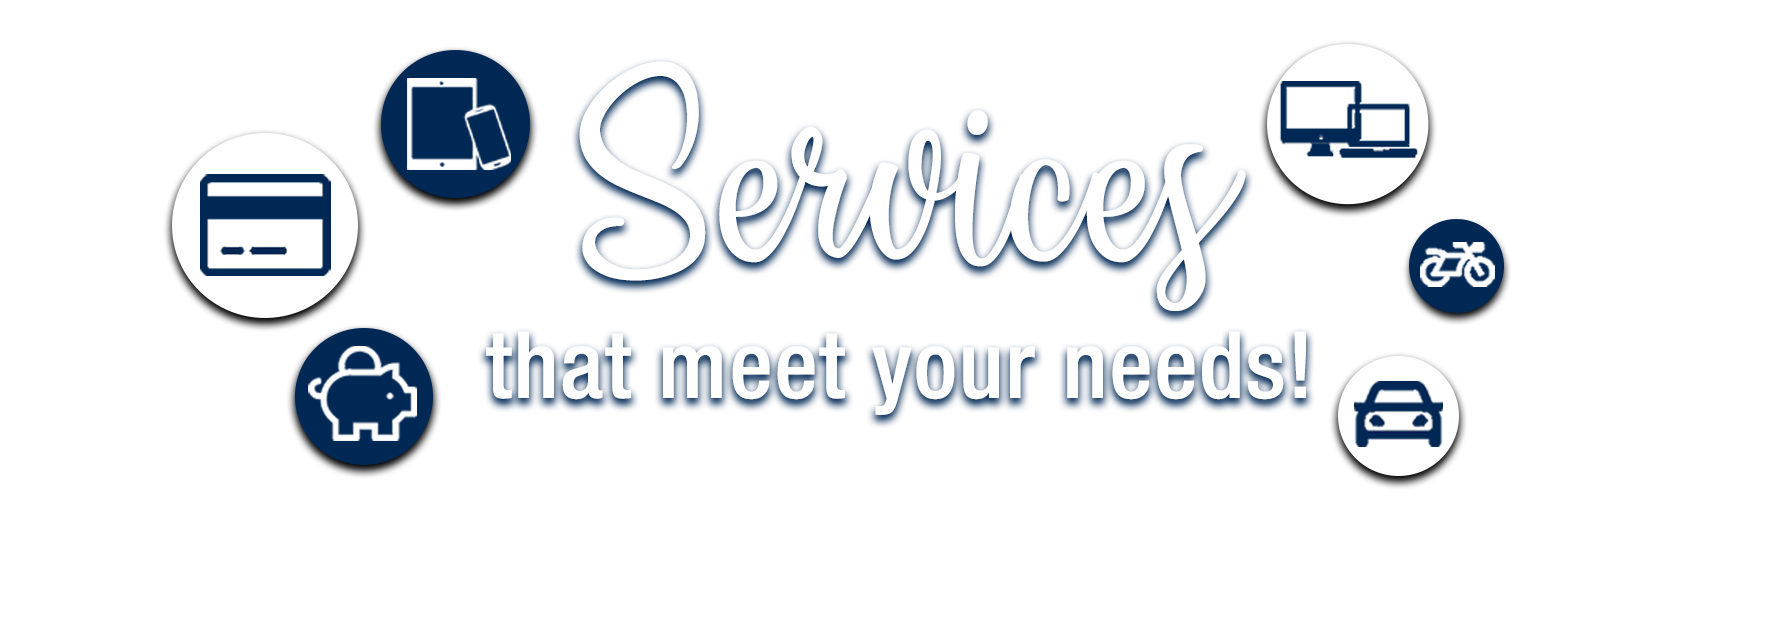 Services that meet your needs